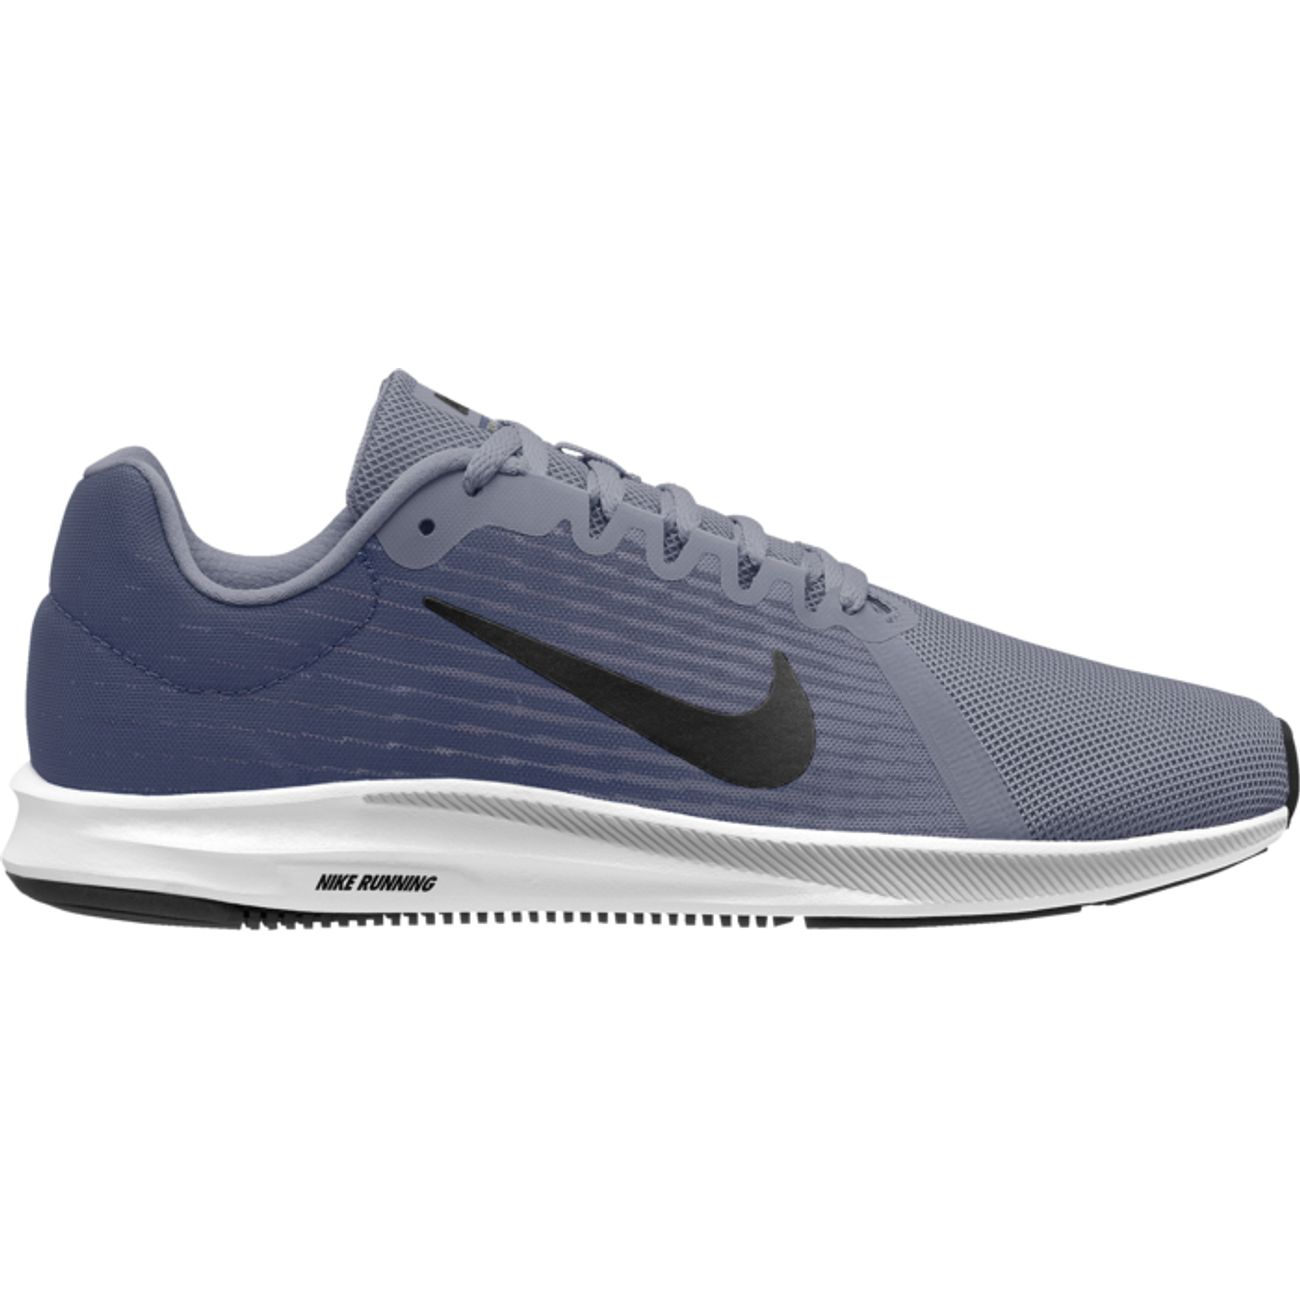 Basses Nike Running Downshifter Homme Chaussures 8 IW9YHED2